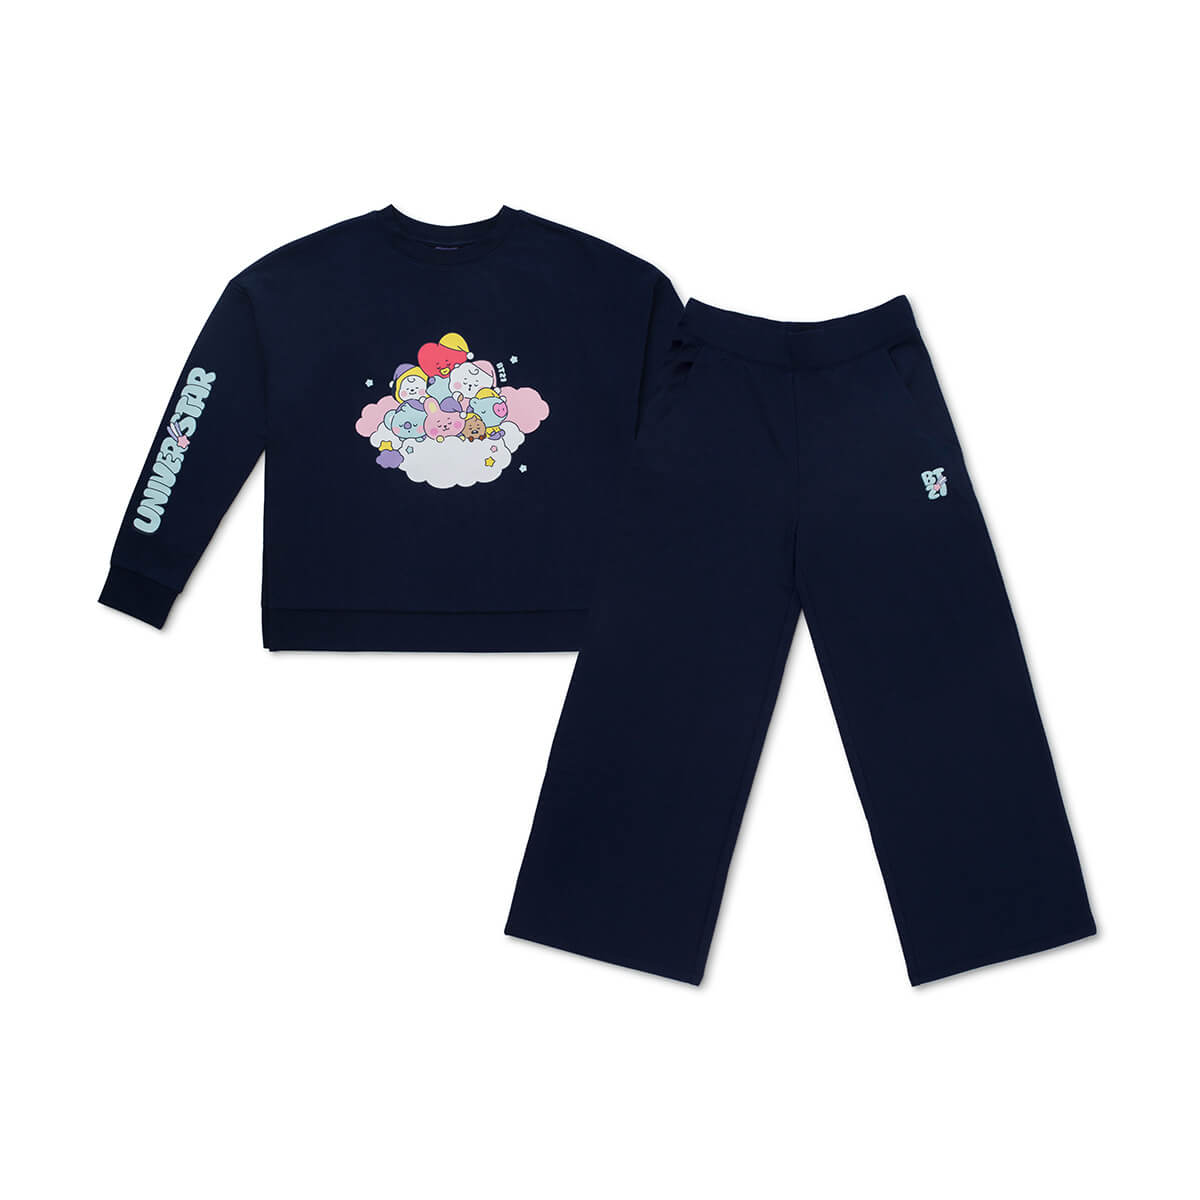 BT21 Dream Adult Pajama Set Navy